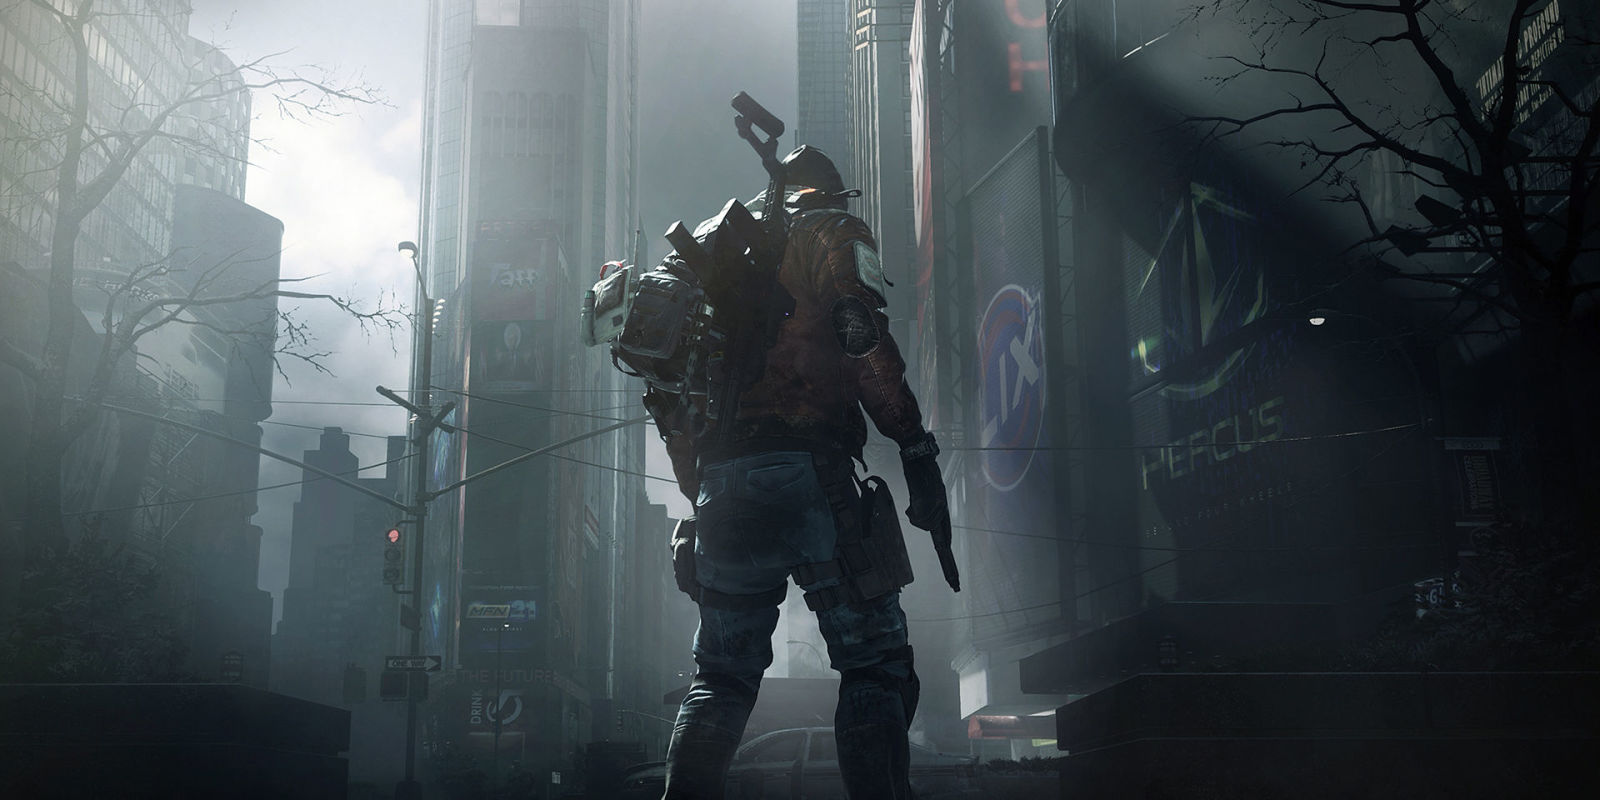 The Division has racked up LOTS of registered players